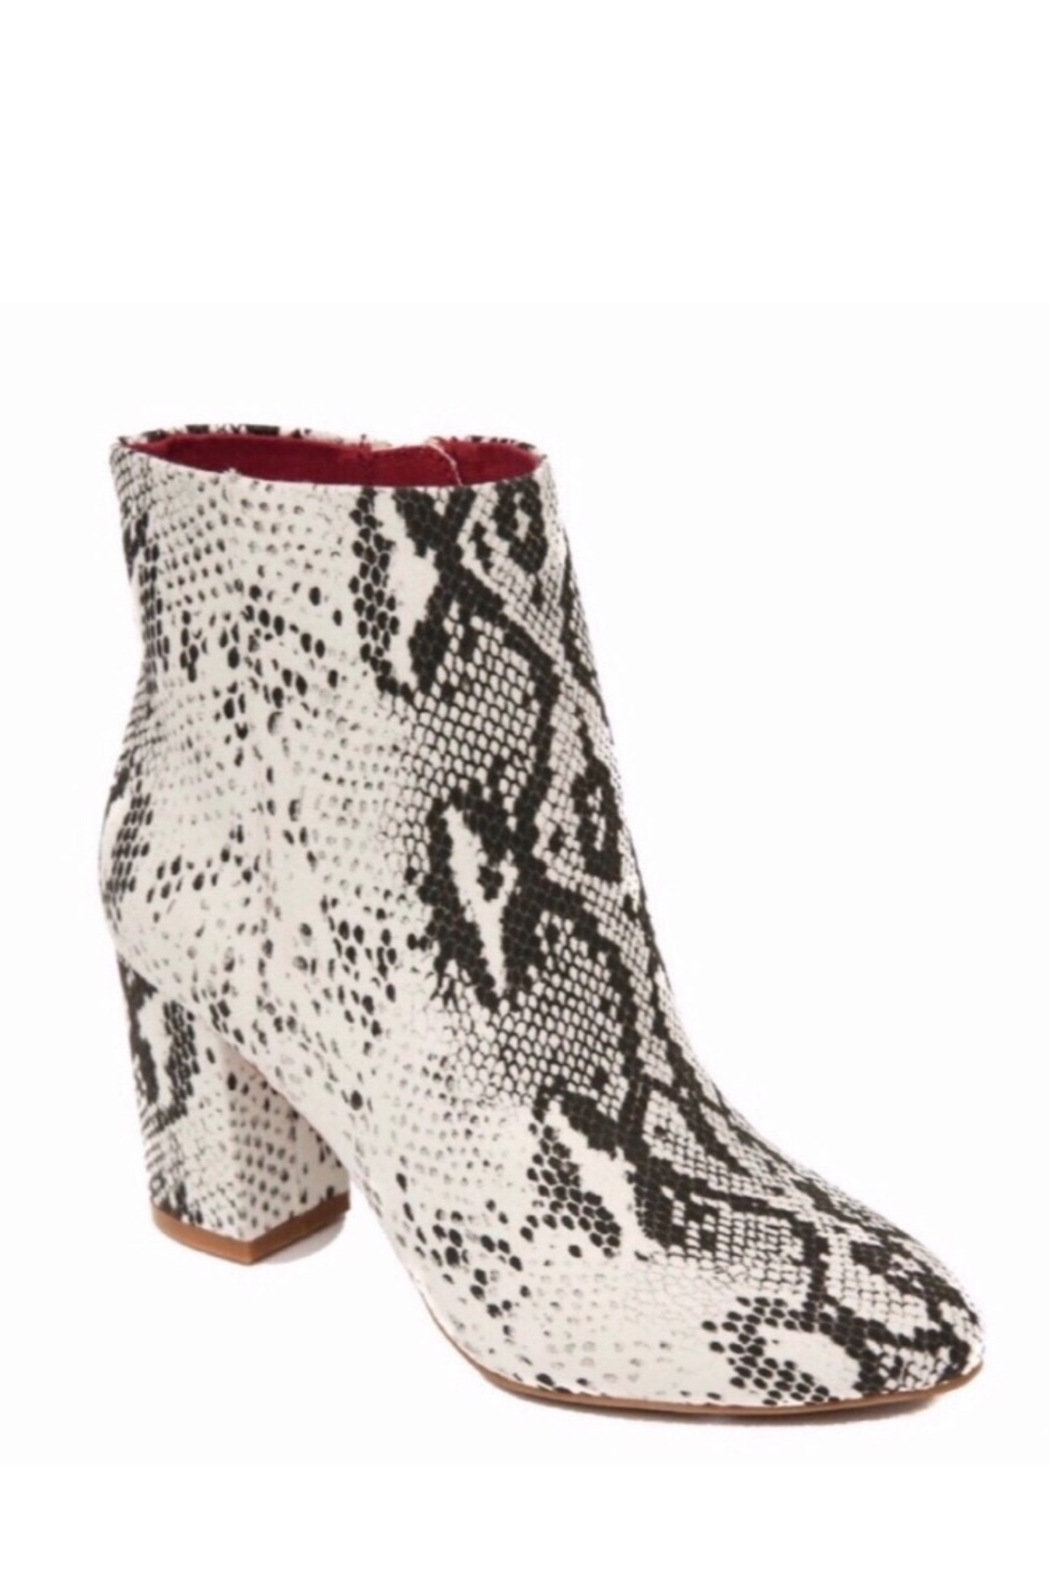 Band Of Gypsies Micro Suede Snake Print Vegan Booties - Main Image